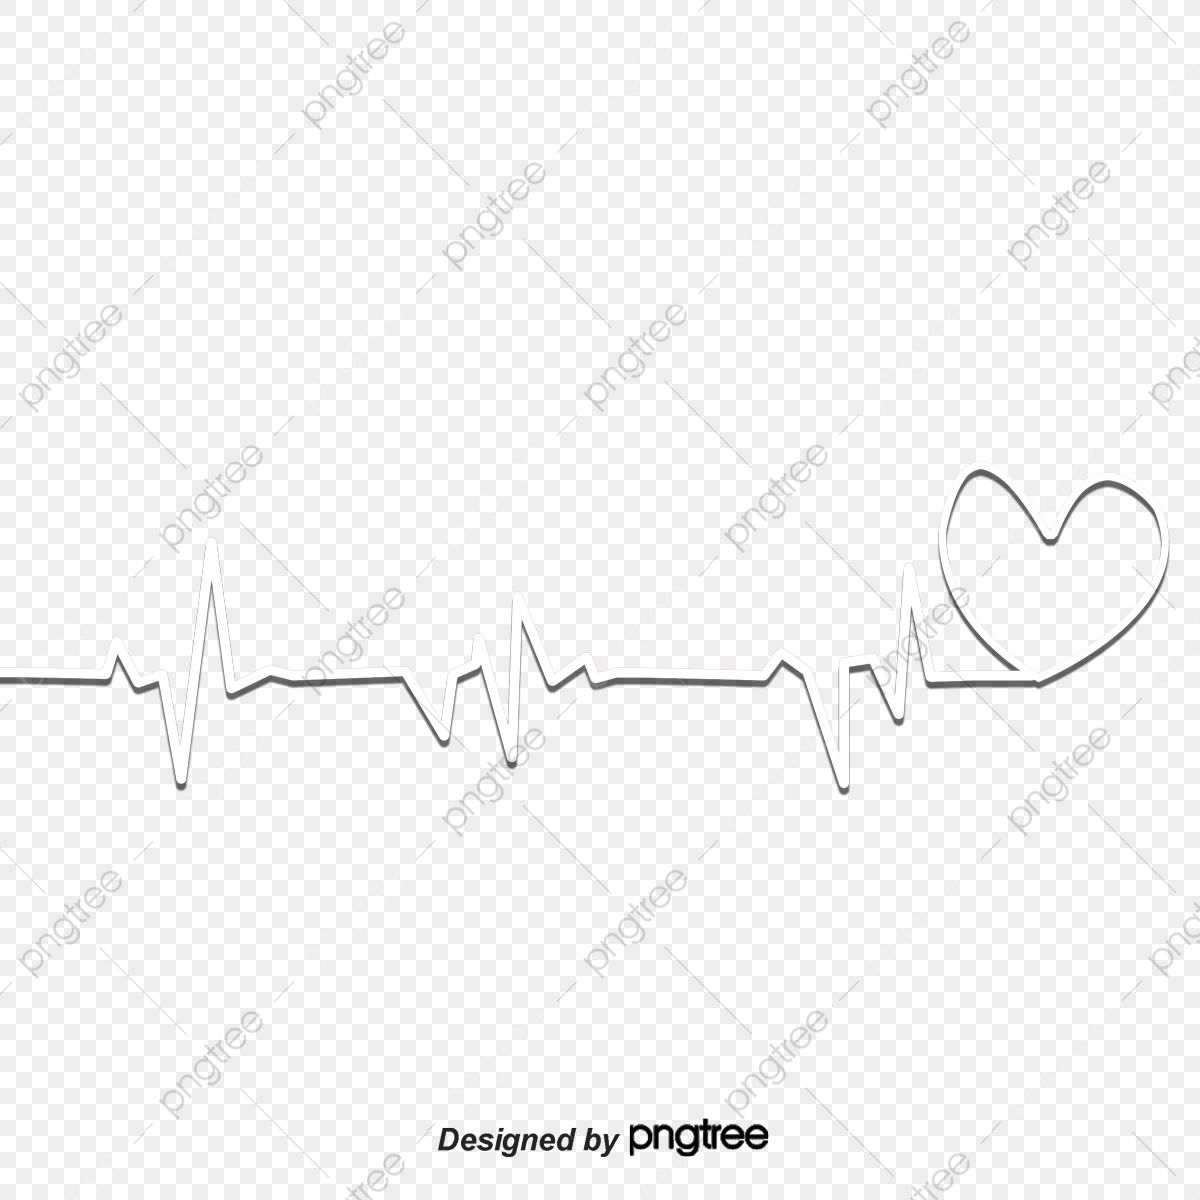 Vector White Heart Beating Diagram Heart Clipart Vector Heart White Heart Png Transparent Clipart Image And Psd File For Free Download Clip Art Heart Drawing White Heart